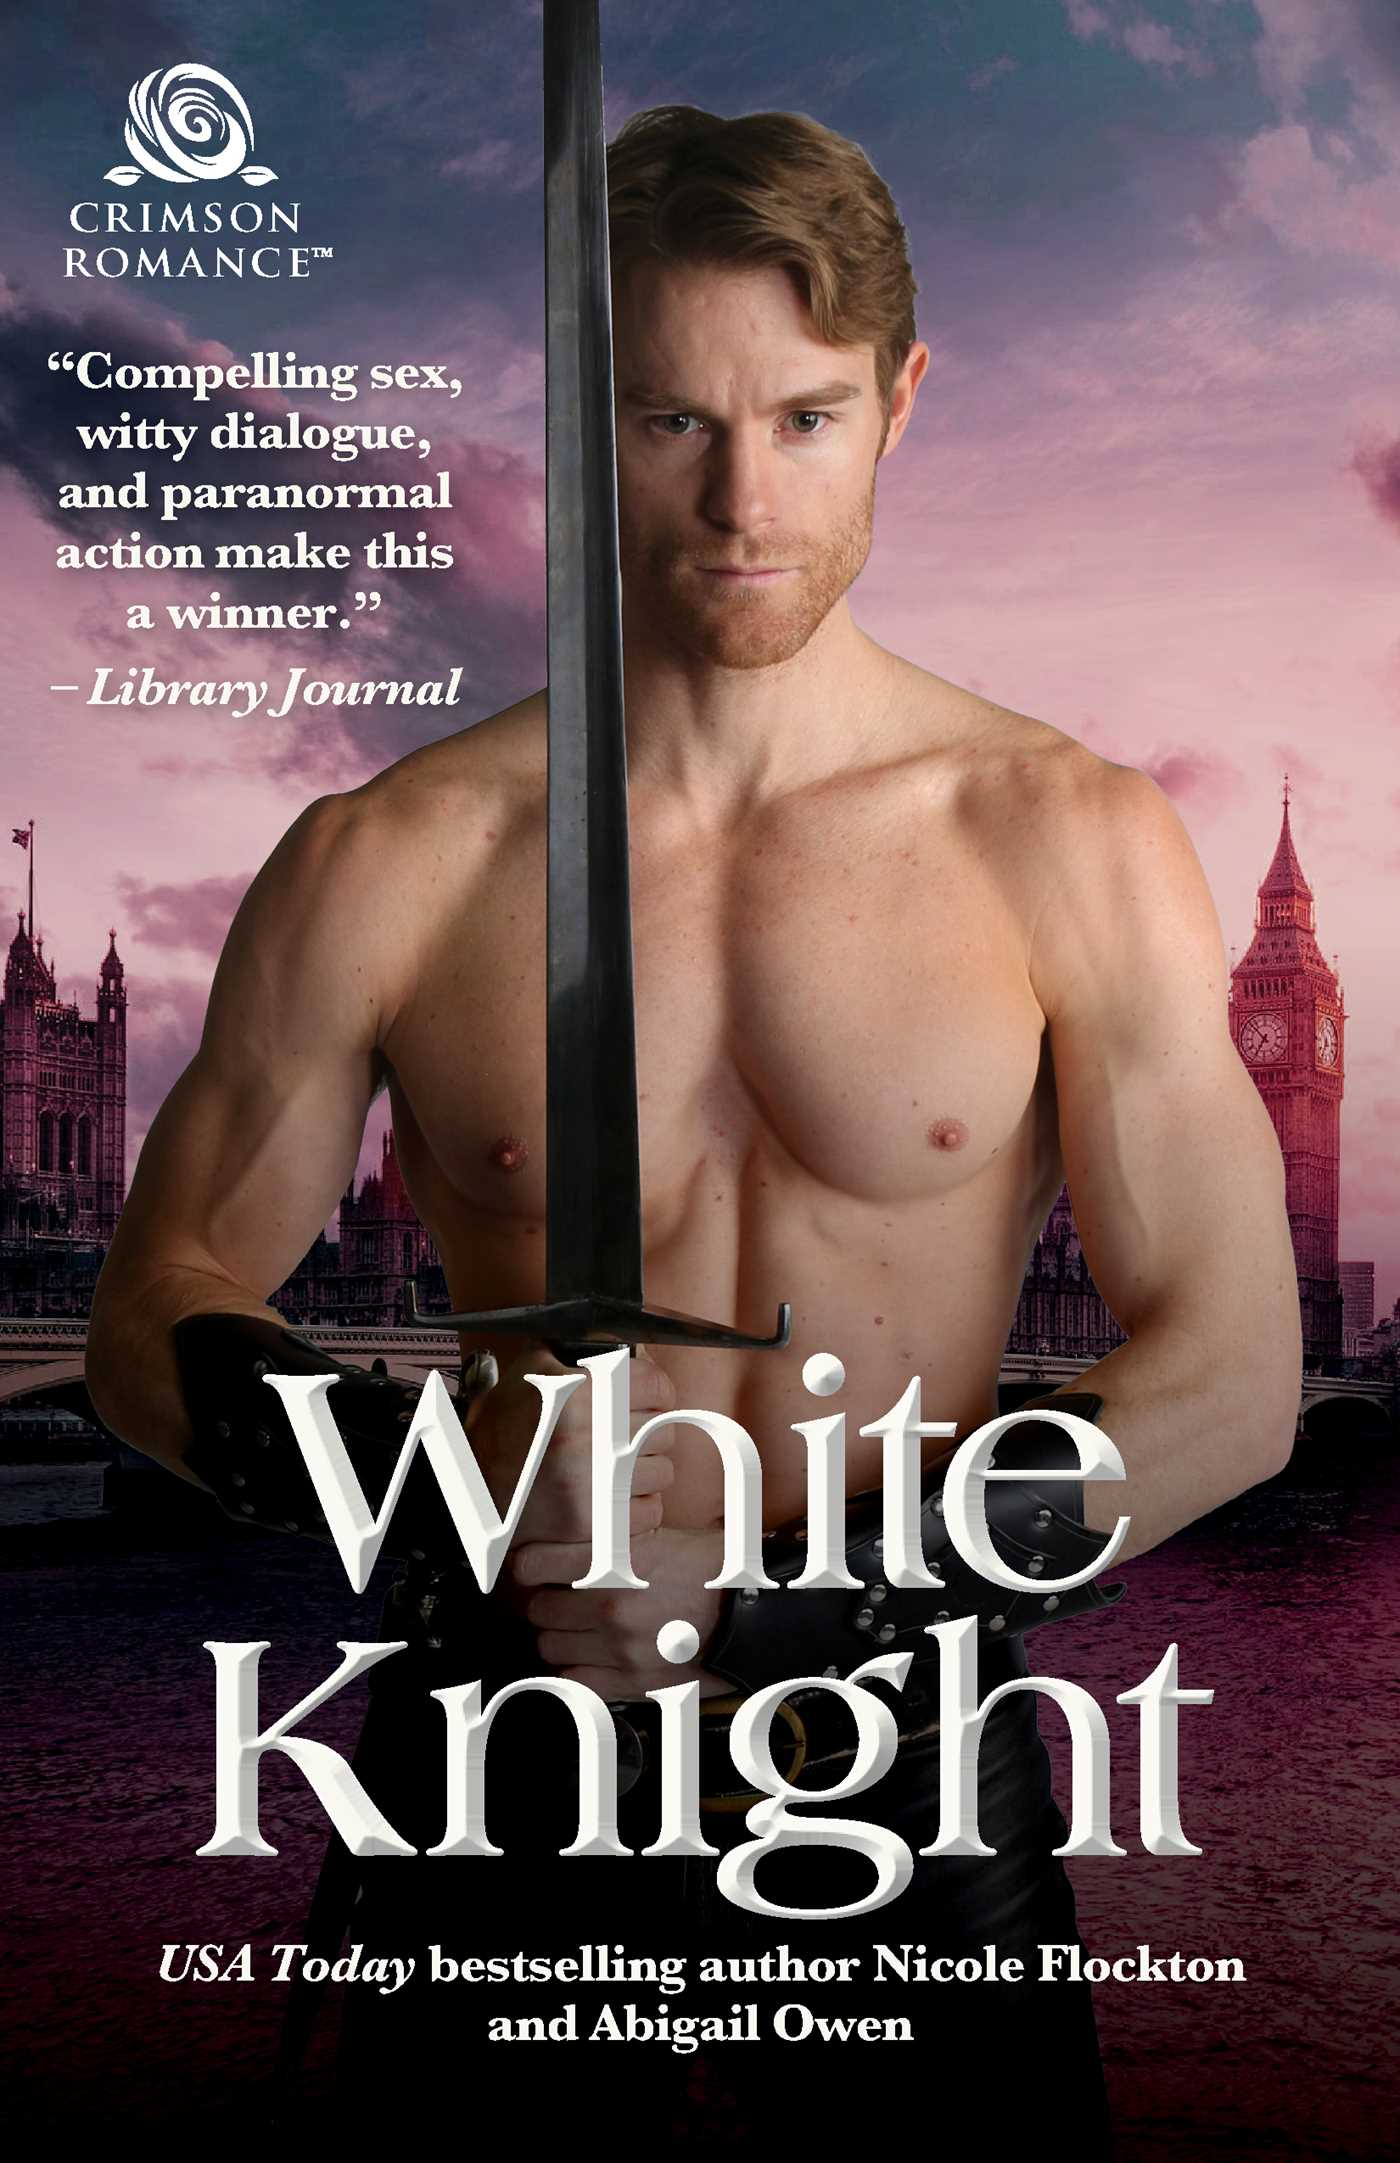 White knight 9781507208755 hr